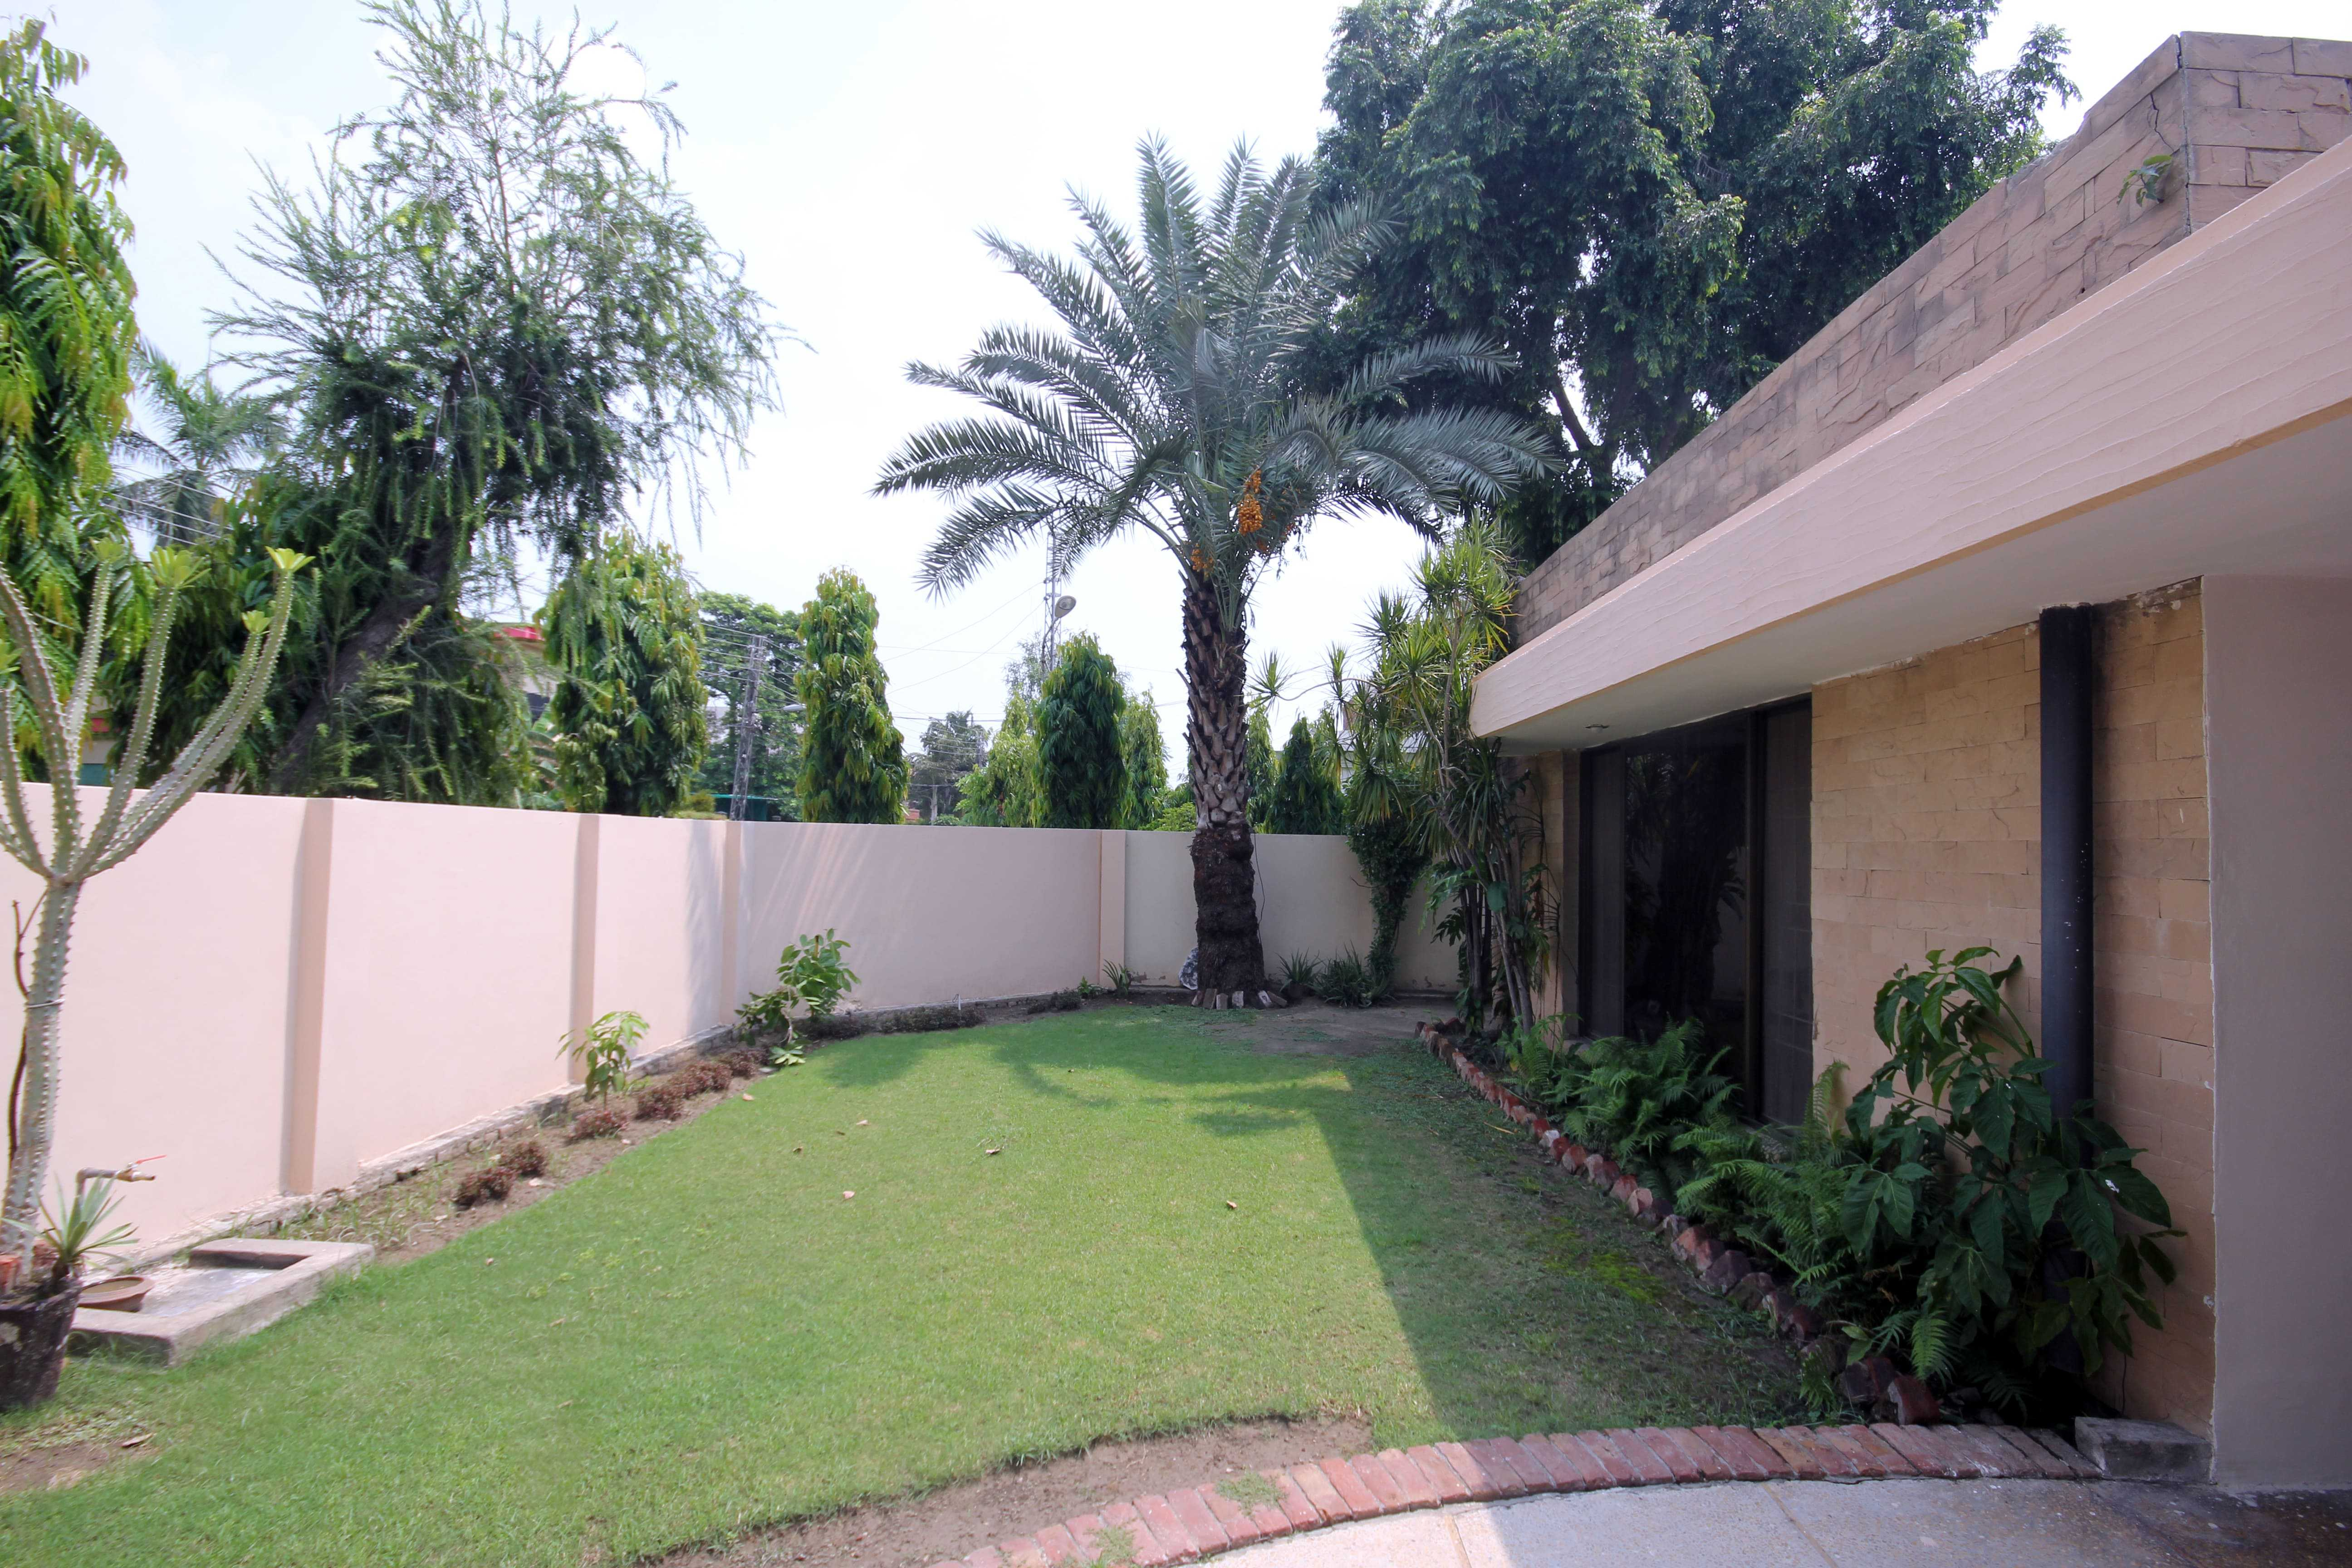 1 Kanal bungalow For Rent Phase 2 DHA